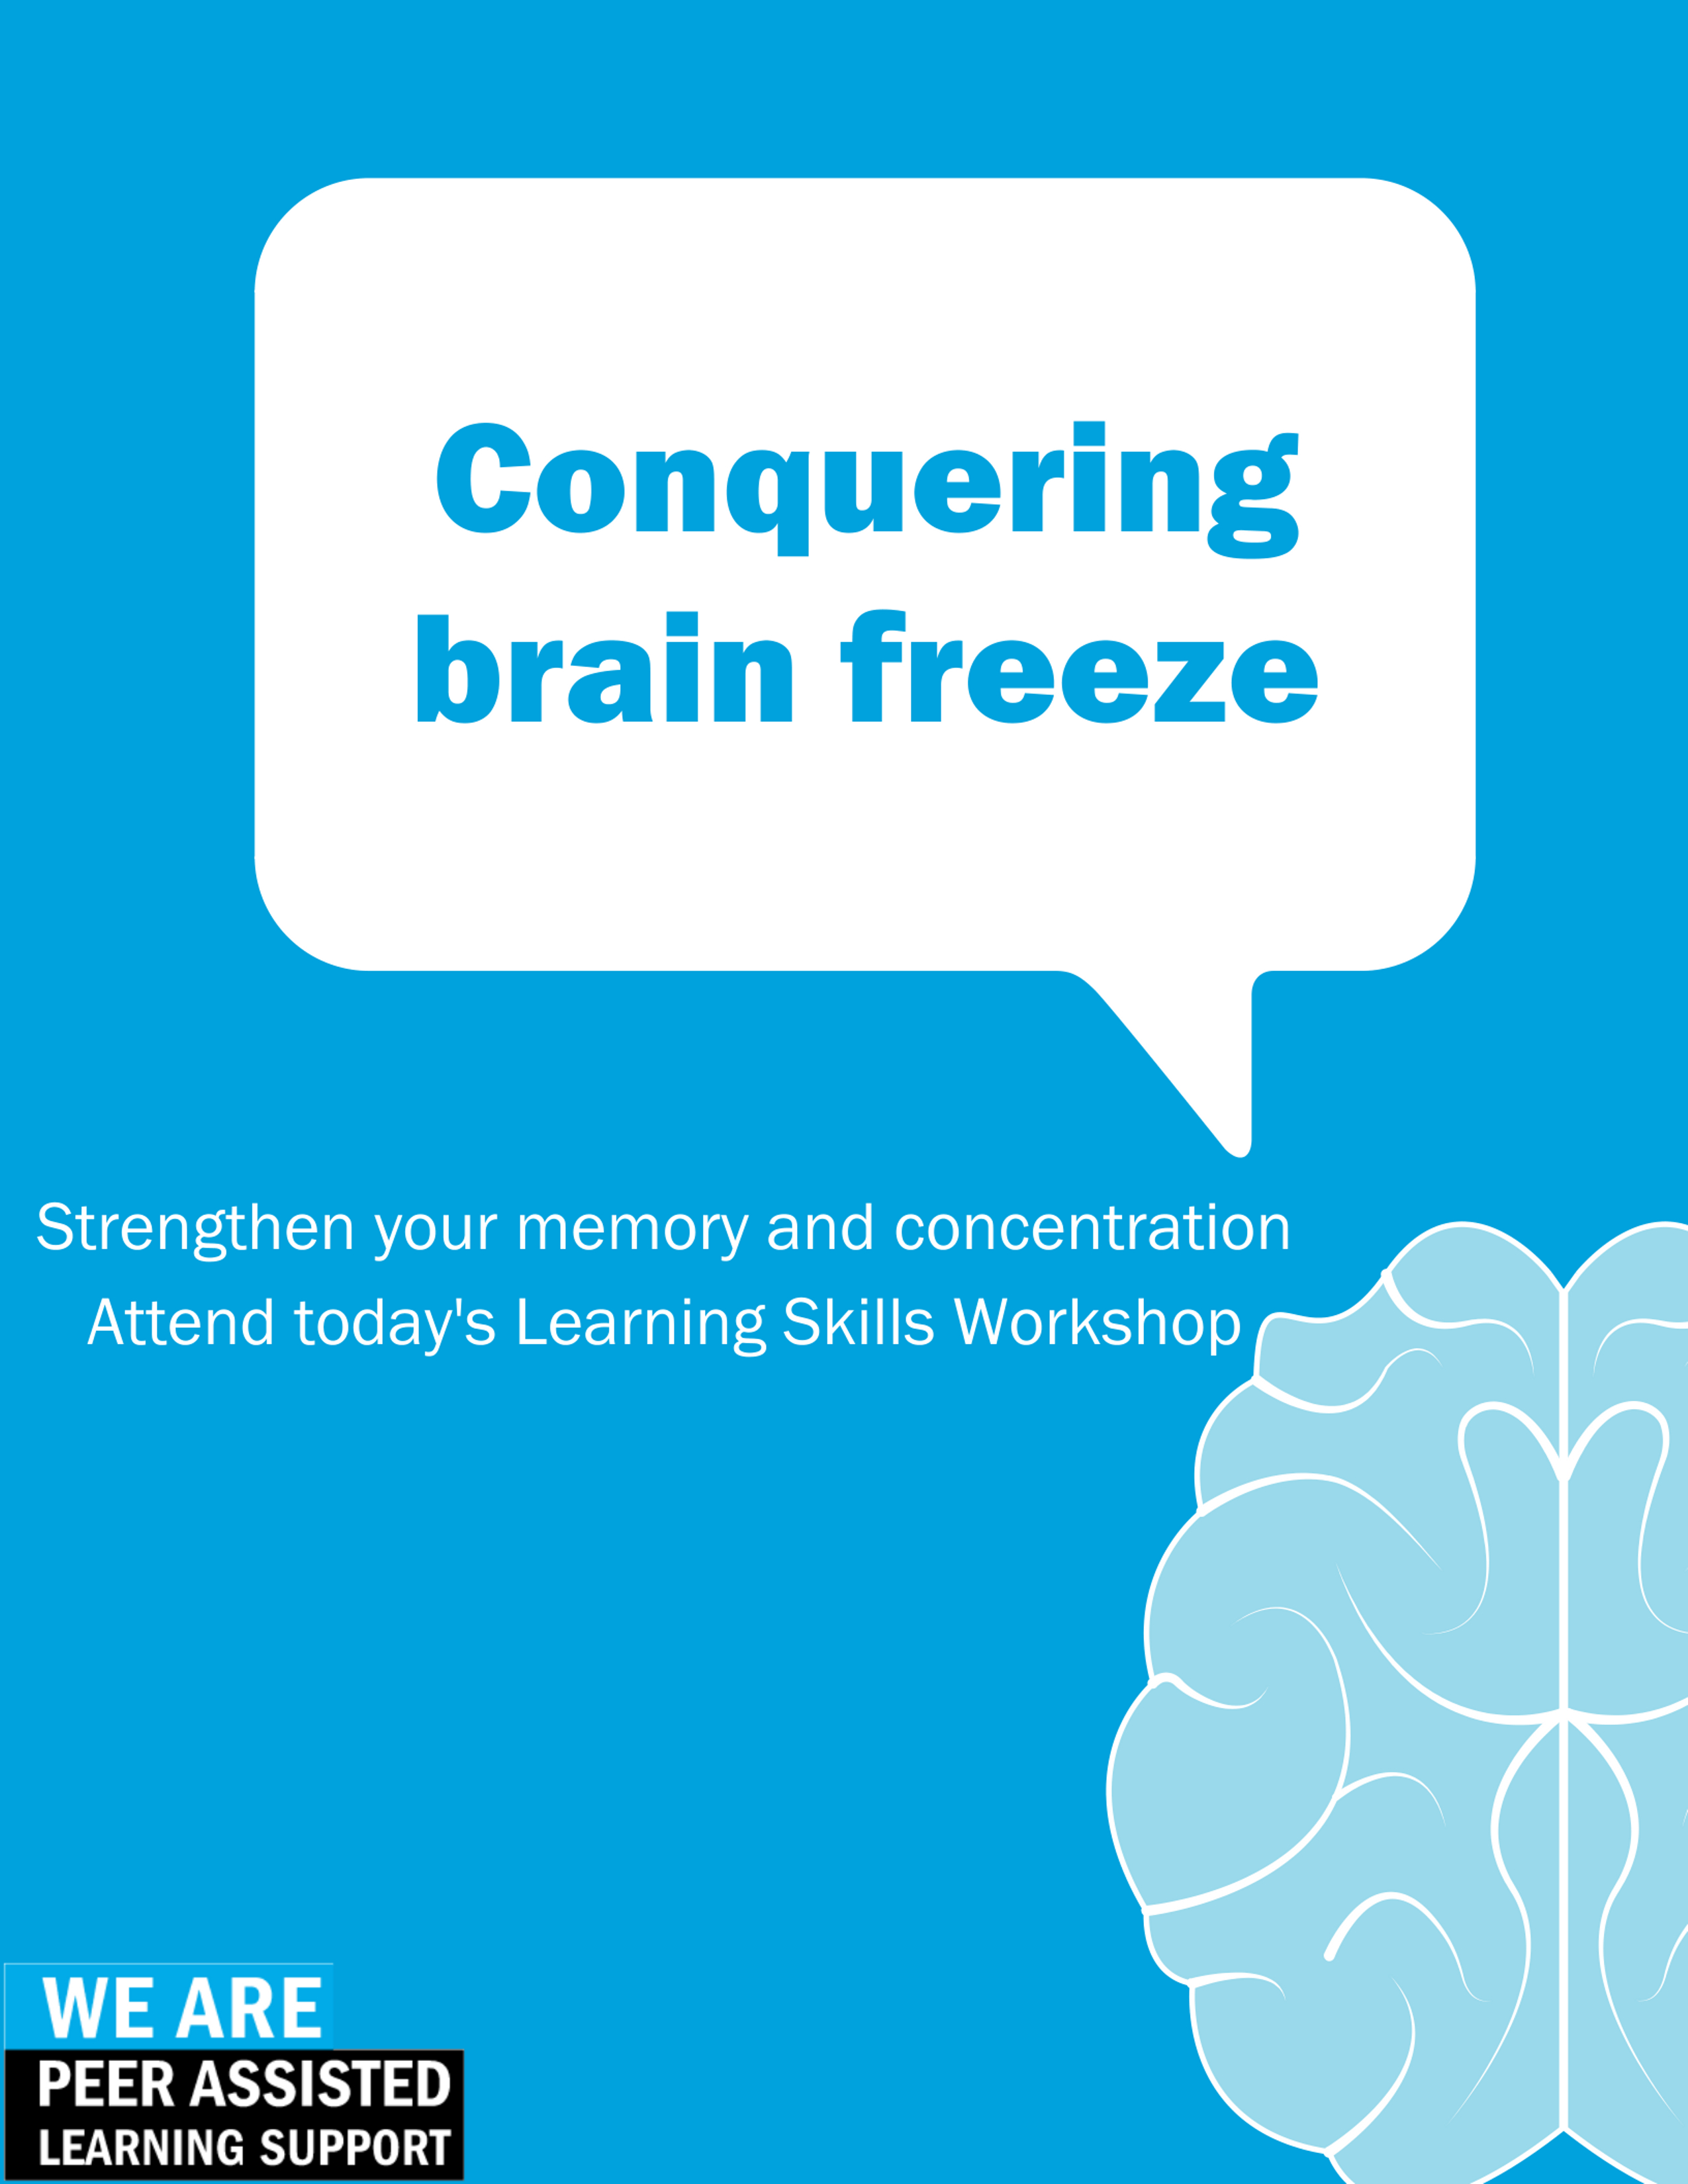 Try out some ways to strengthen your memory and concentration skills for tests and exams!